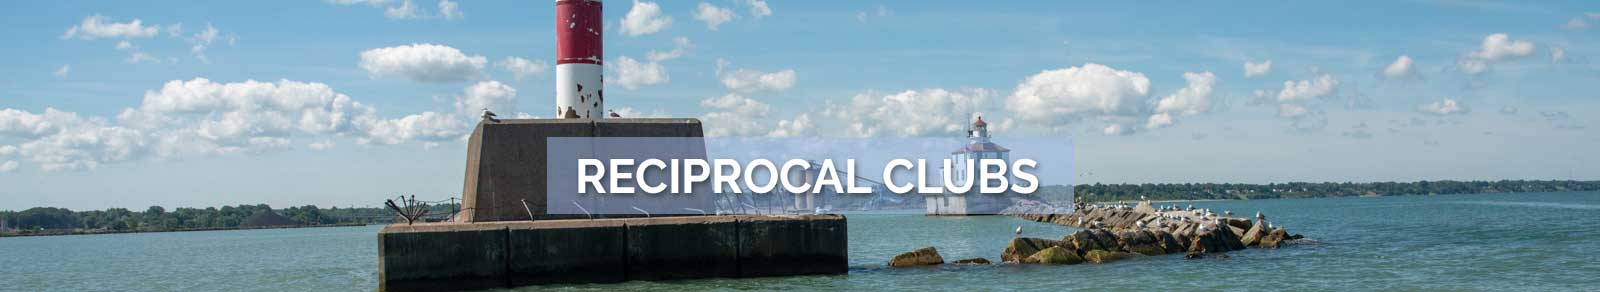 Reciprocal Clubs